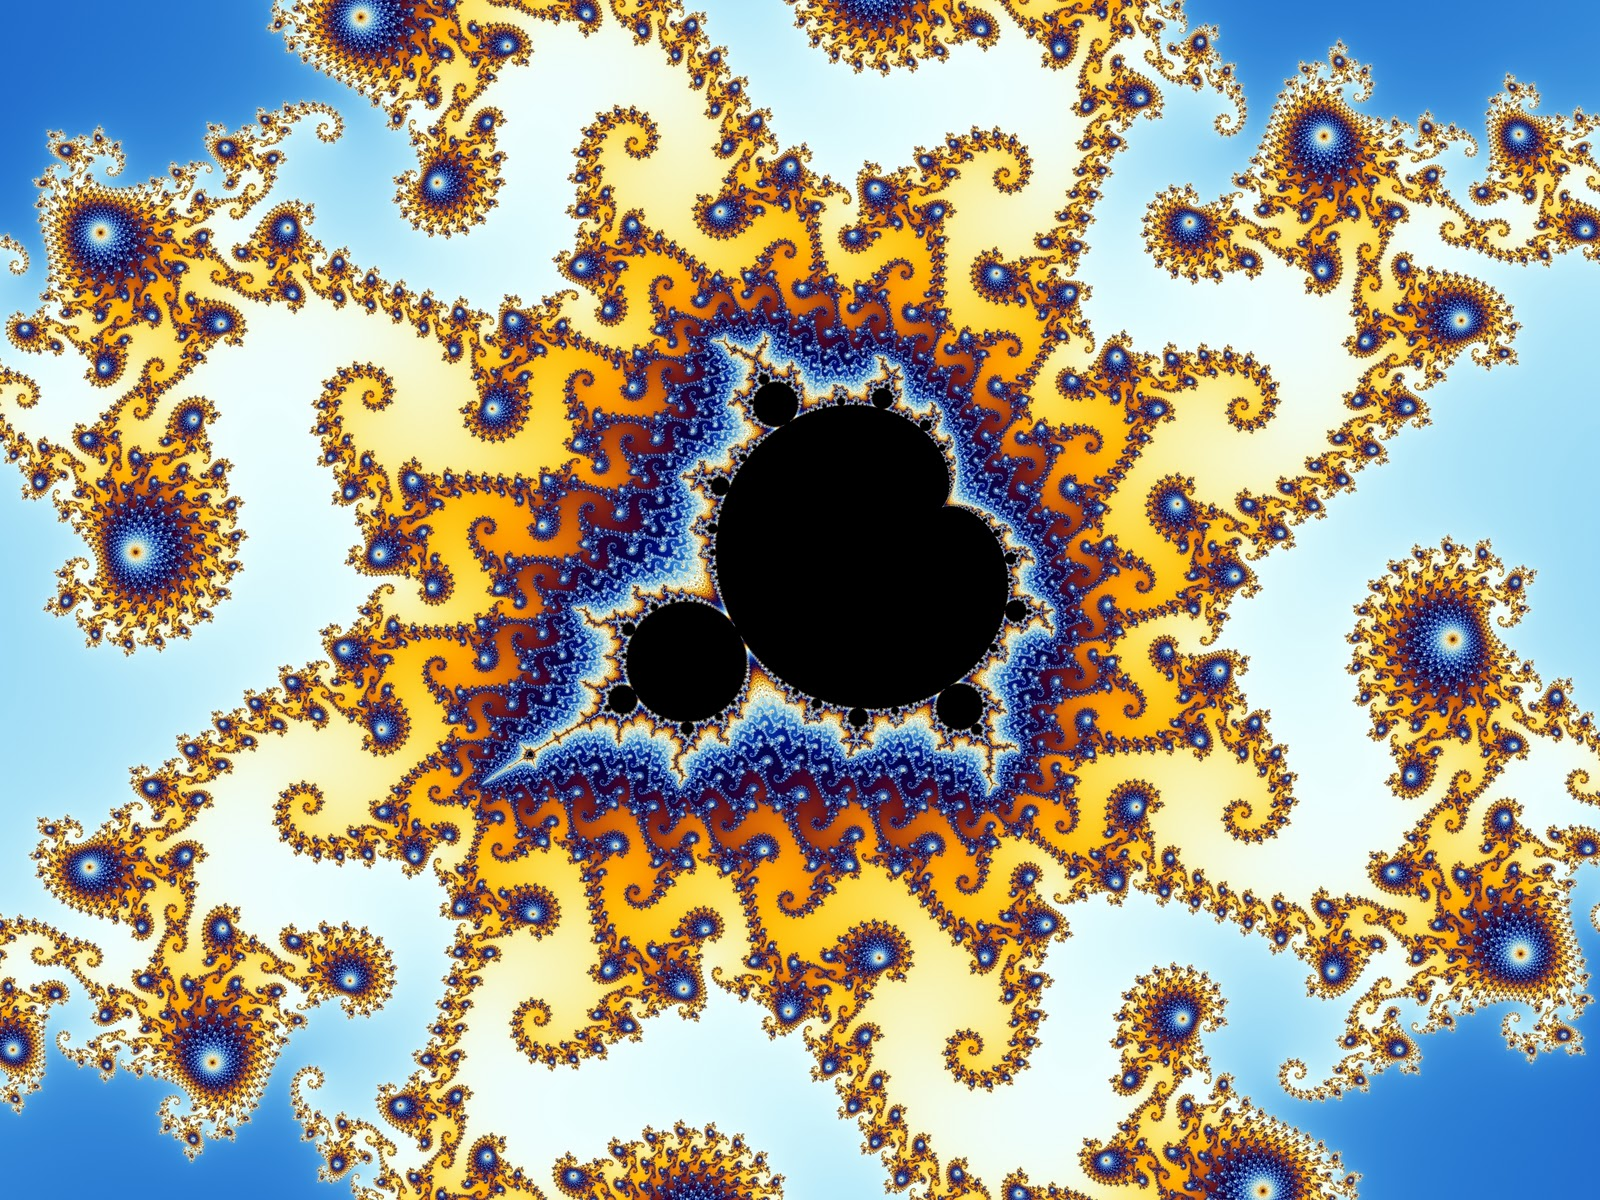 the man cave: The Mandelbrot Set & Fractals